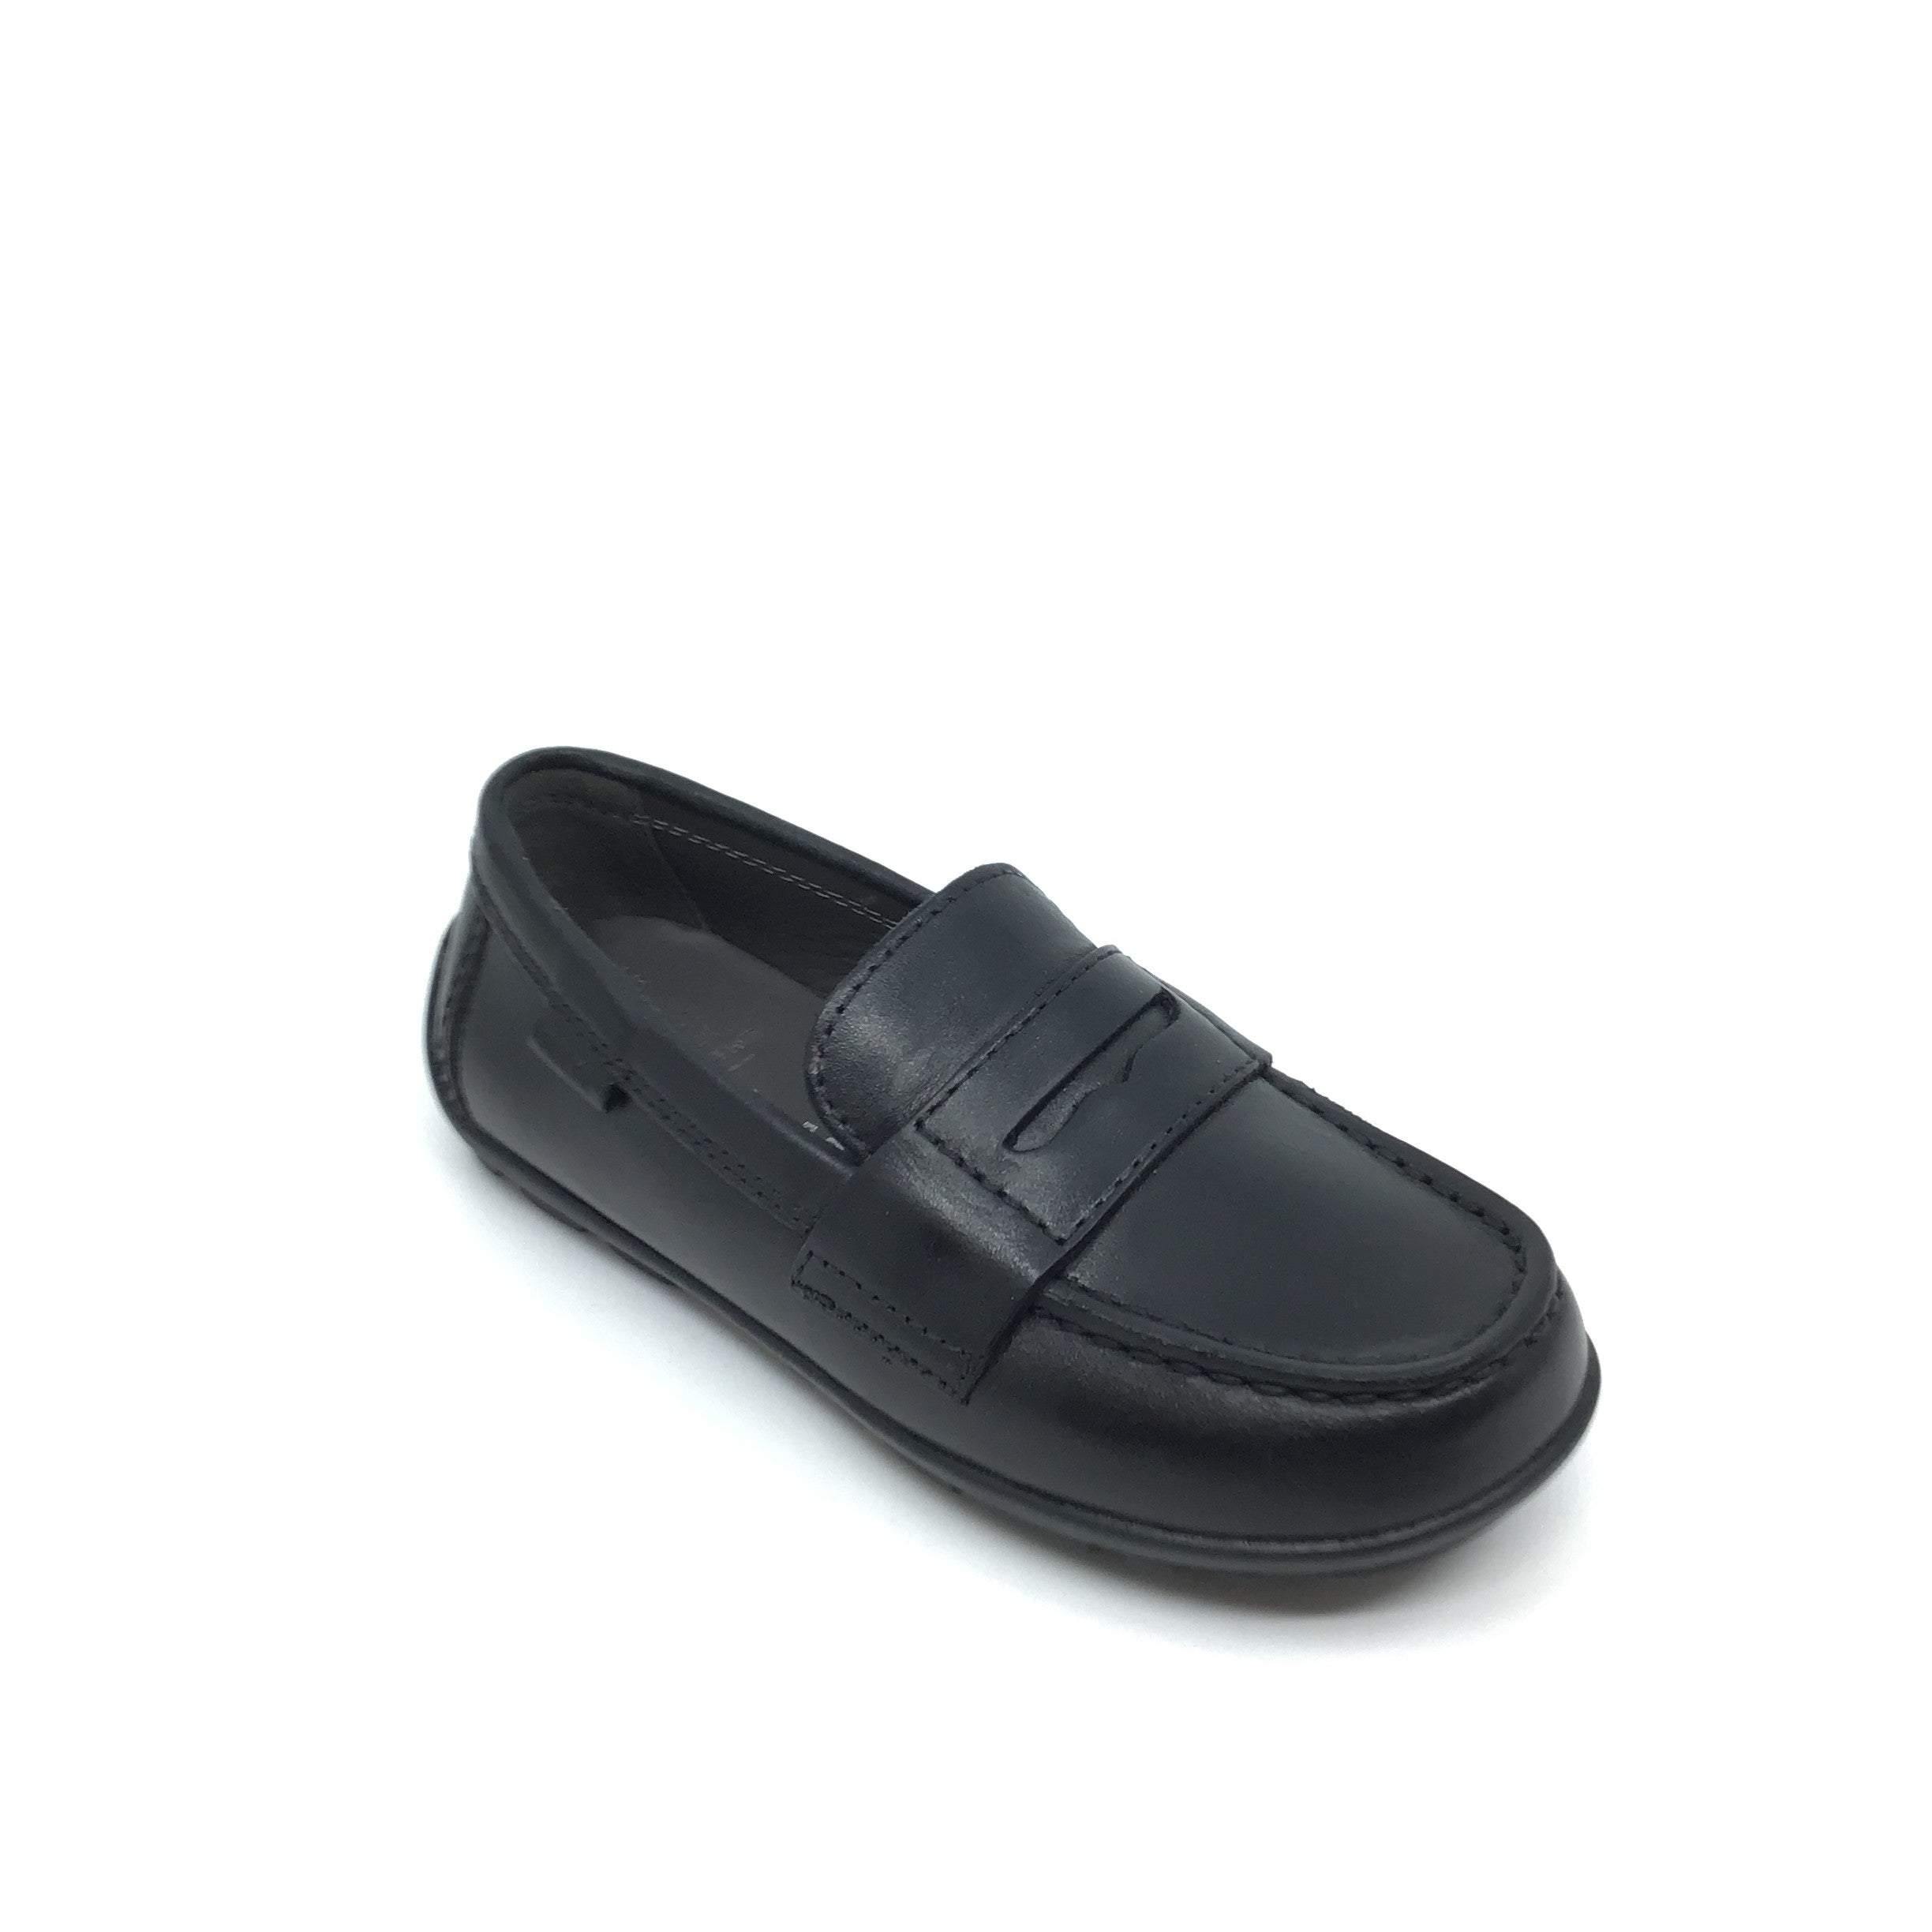 Geox Black Penny Loafer